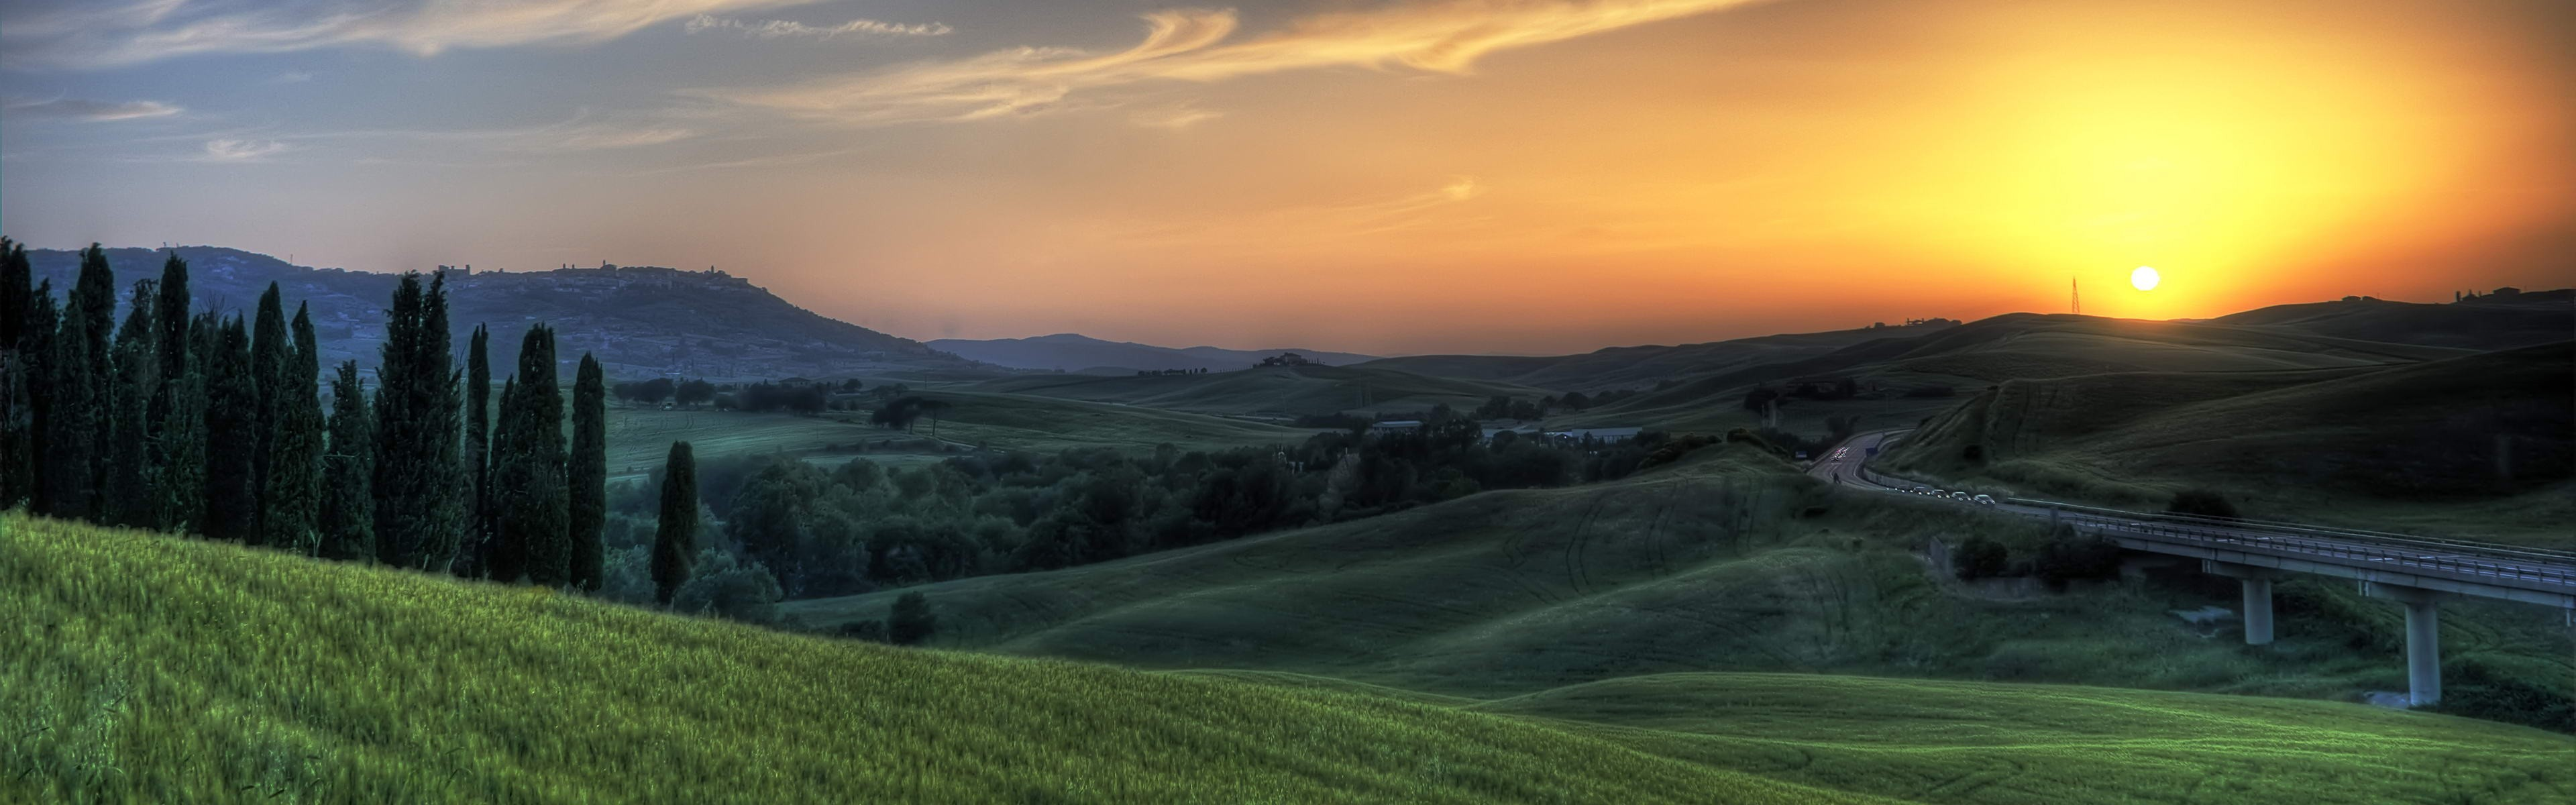 dual monitors multiple display sunset landscape plains hills tuscany